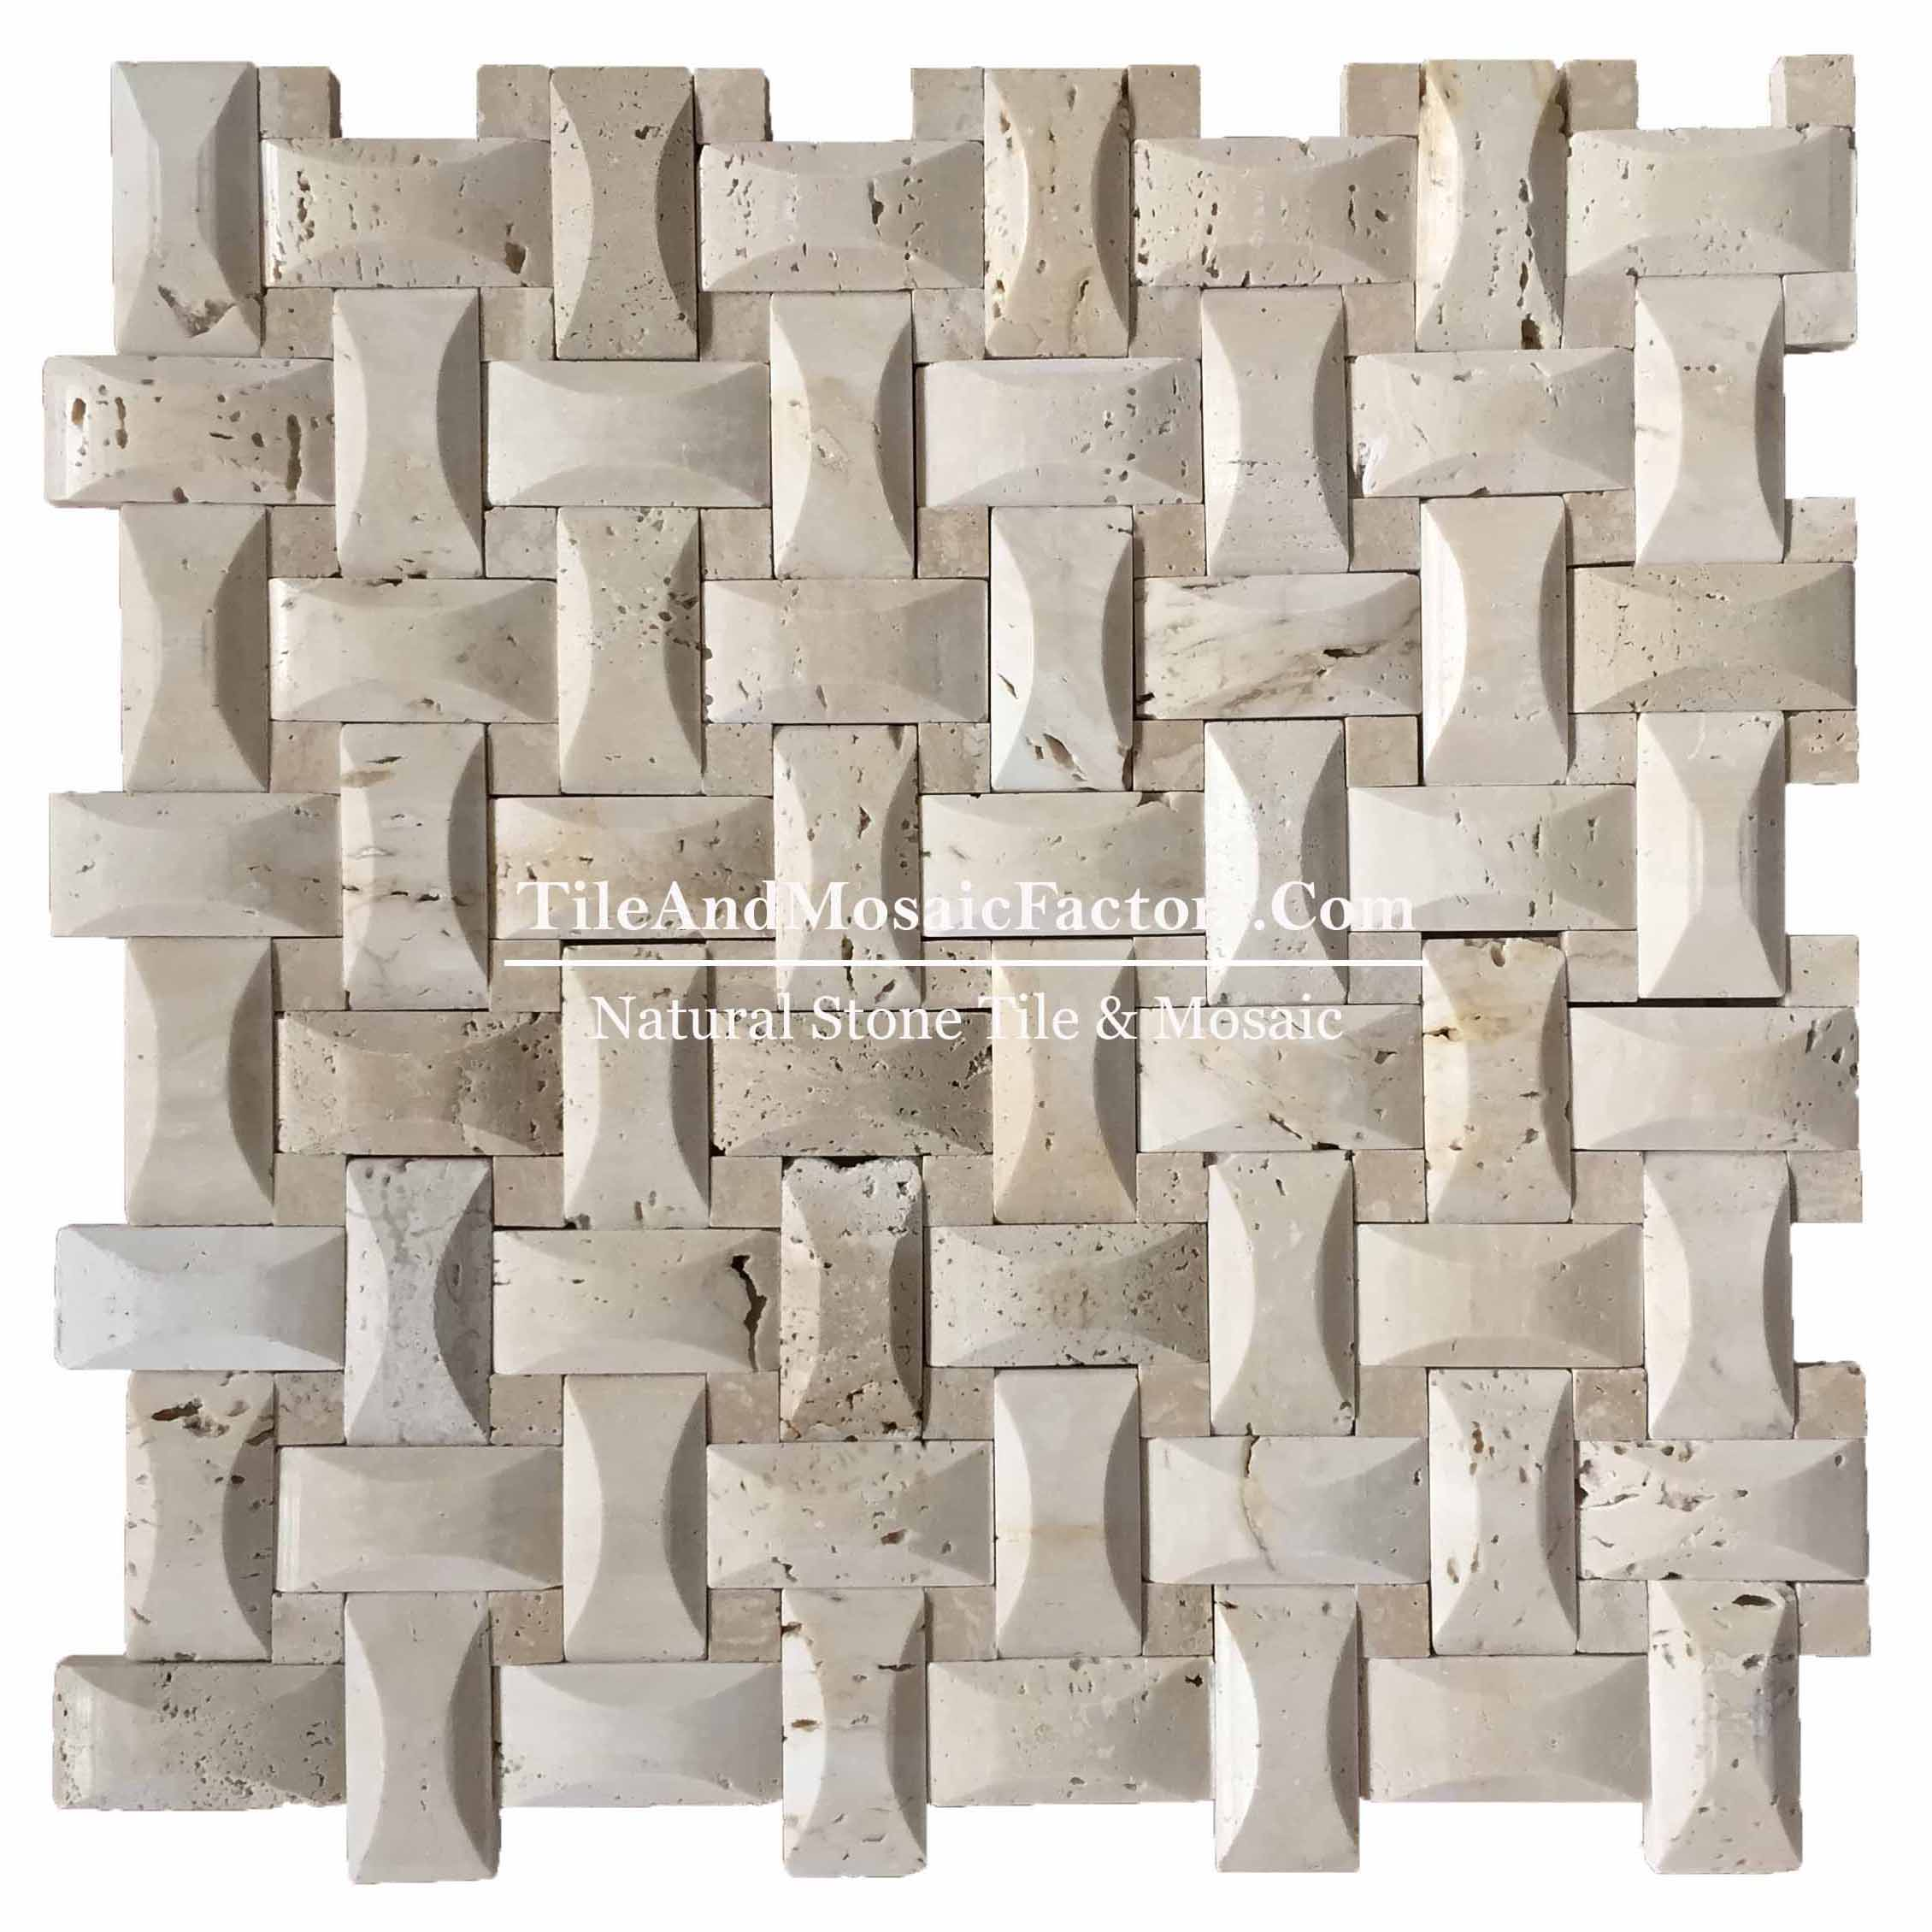 Light Travertine  Basketweave Pillowed  polished Beige color Marble Mosaic